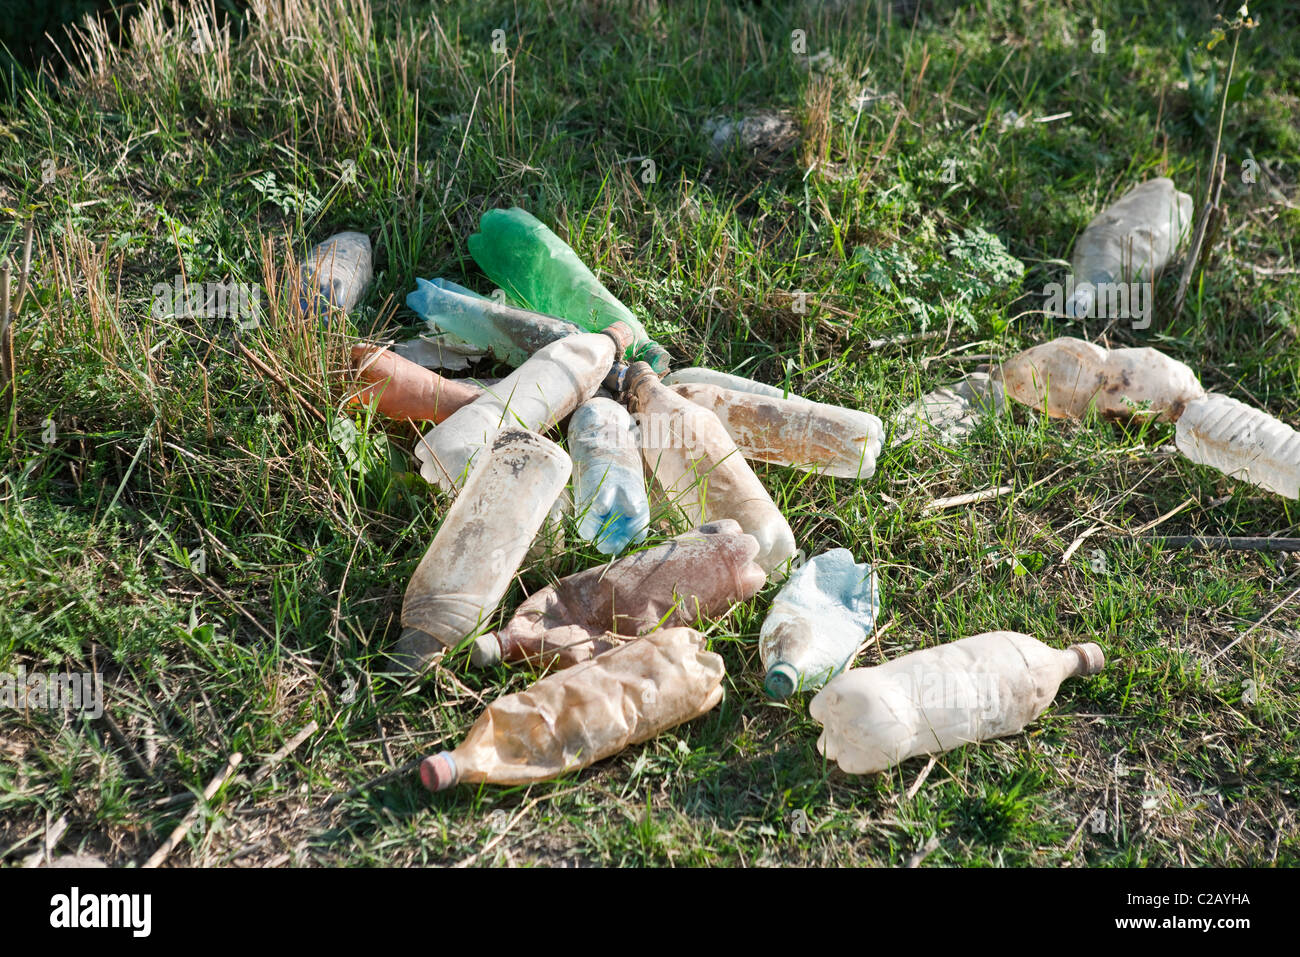 Discarded plastic bottles littering the ground - Stock Image